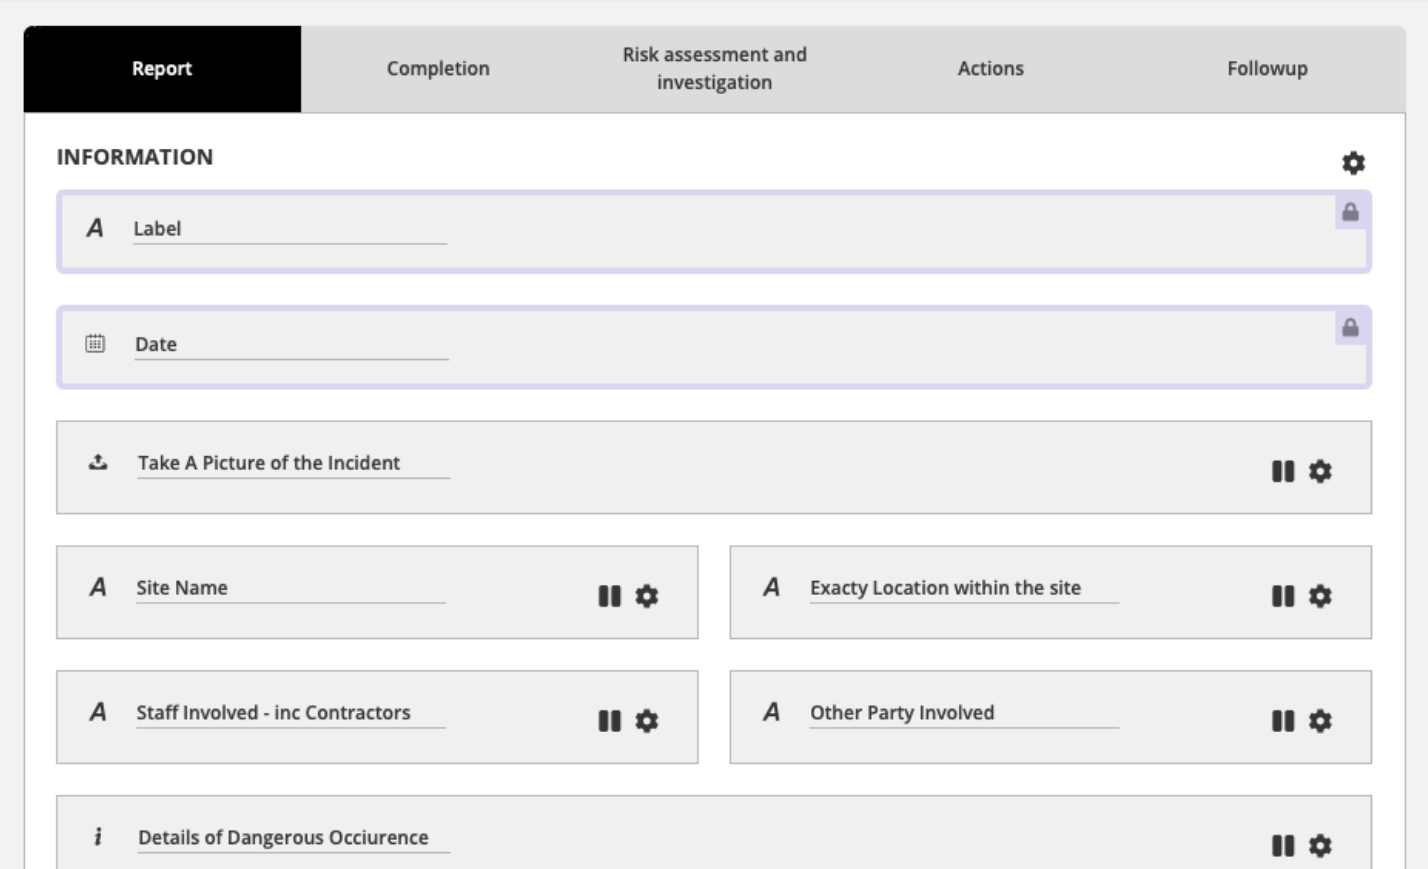 Templates and workflows for incident management